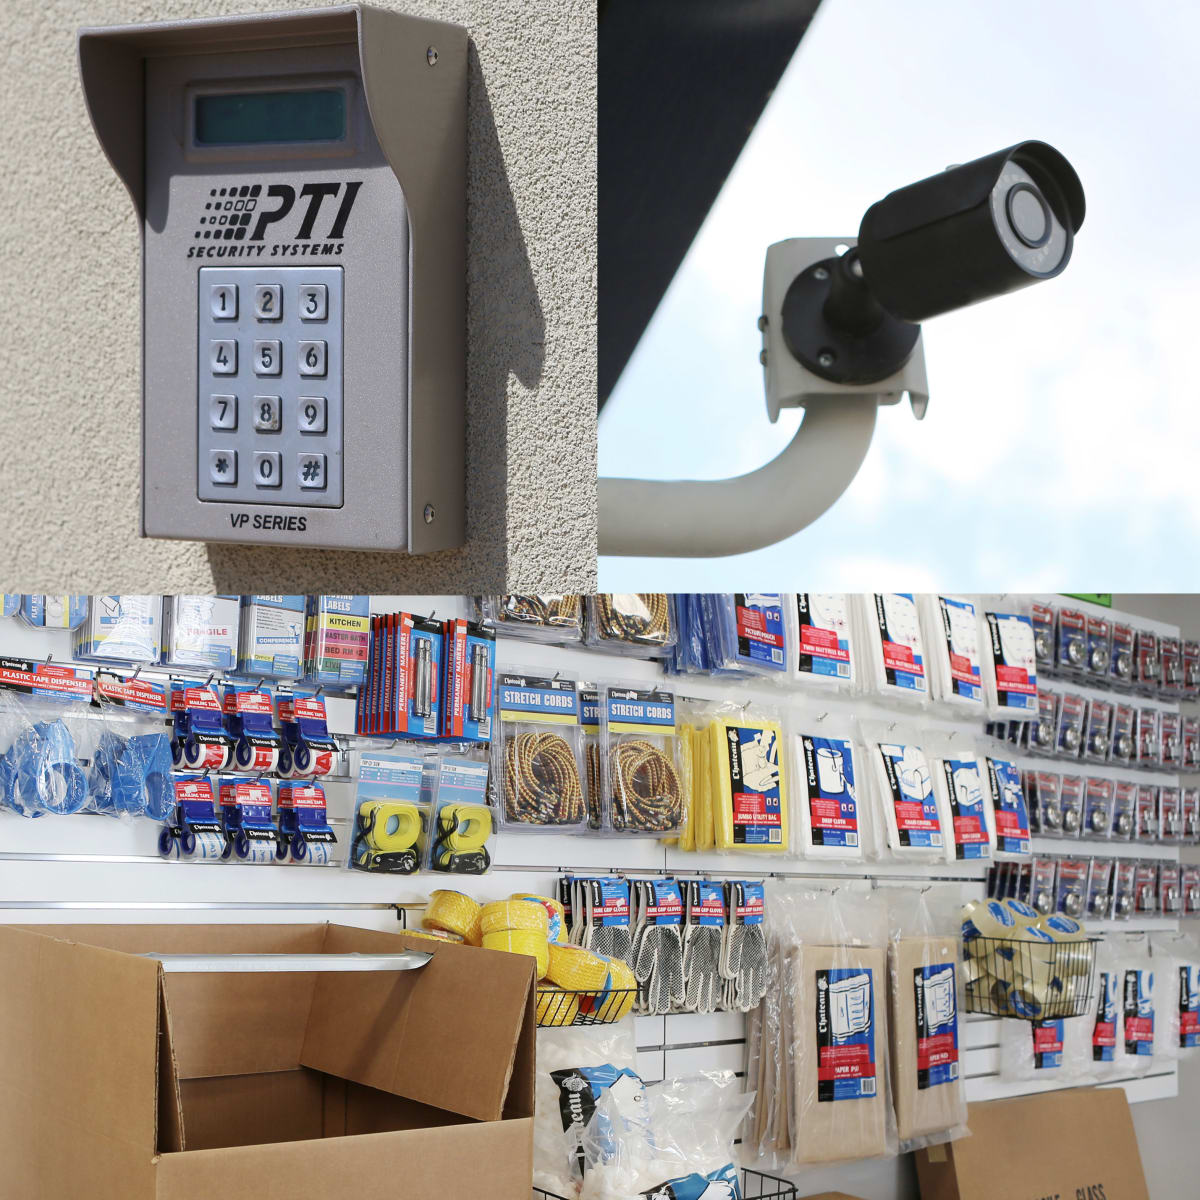 We provide 24 hour security monitoring and sell various moving and packing supplies at StoreSmart Self-Storage in Rockledge, Florida